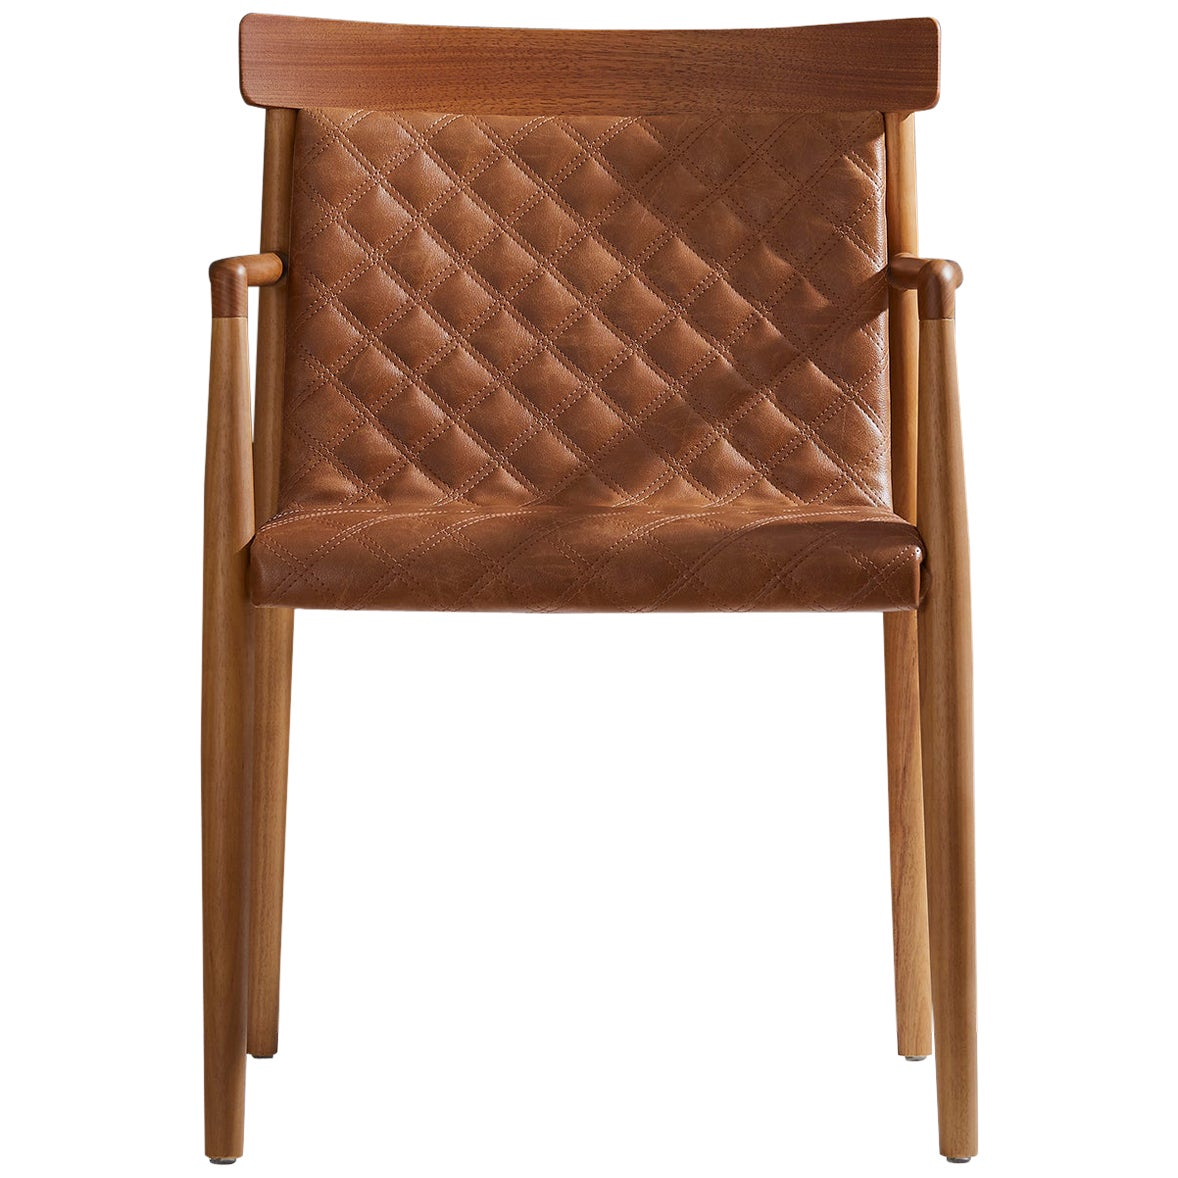 Contemporary Chair in Natural Solid Wood, Upholstered Leather, with Arms